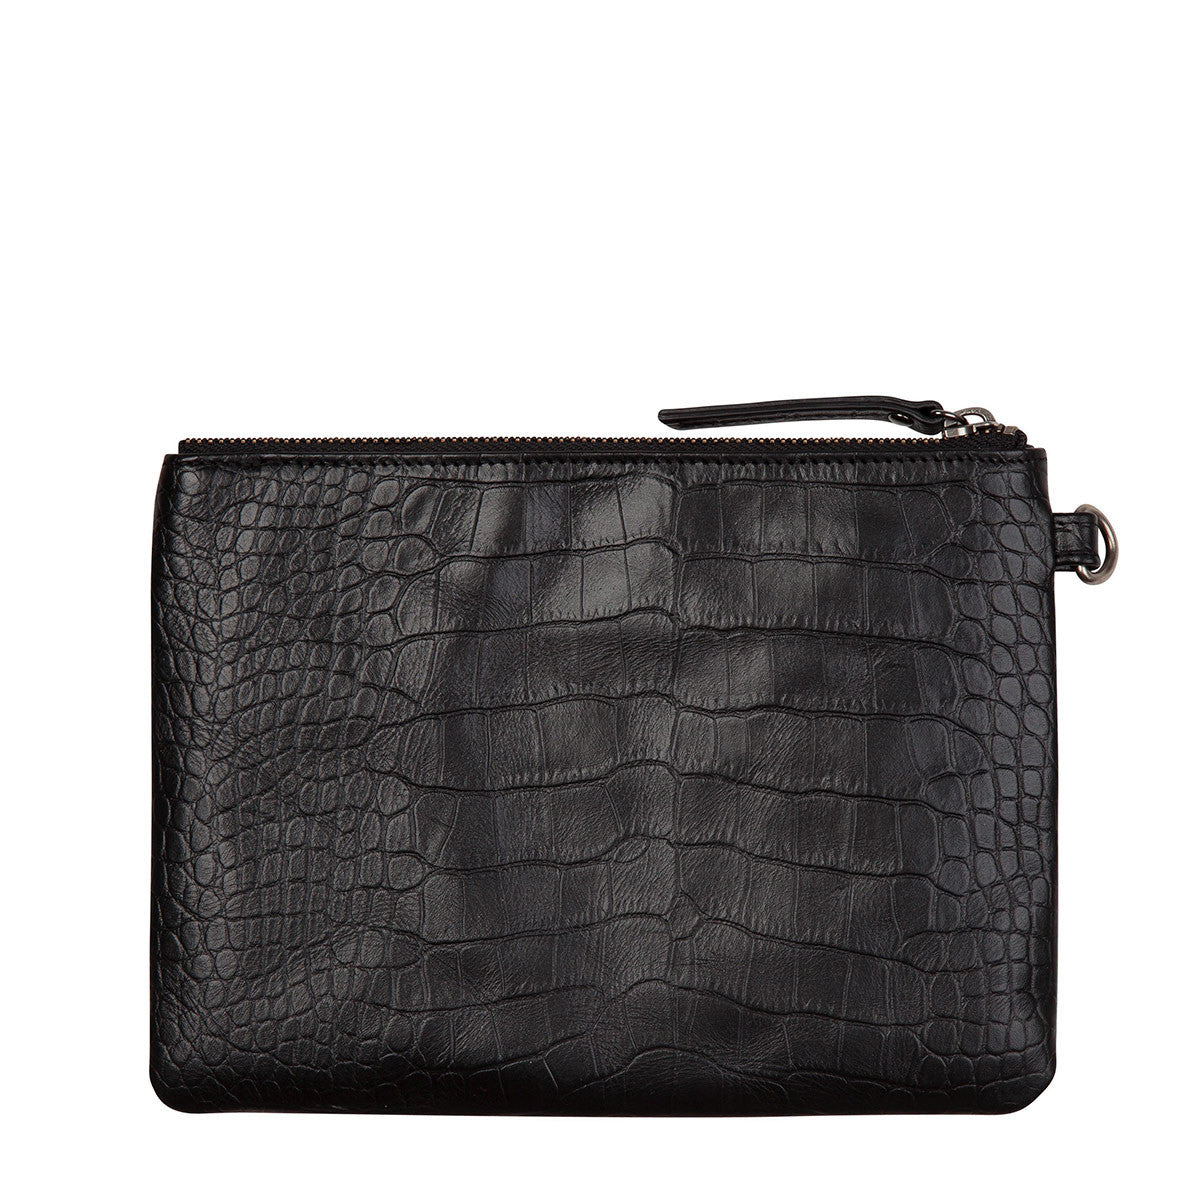 THE FIXATION BLACK CROC WALLET FROM STATUS ANXIETY